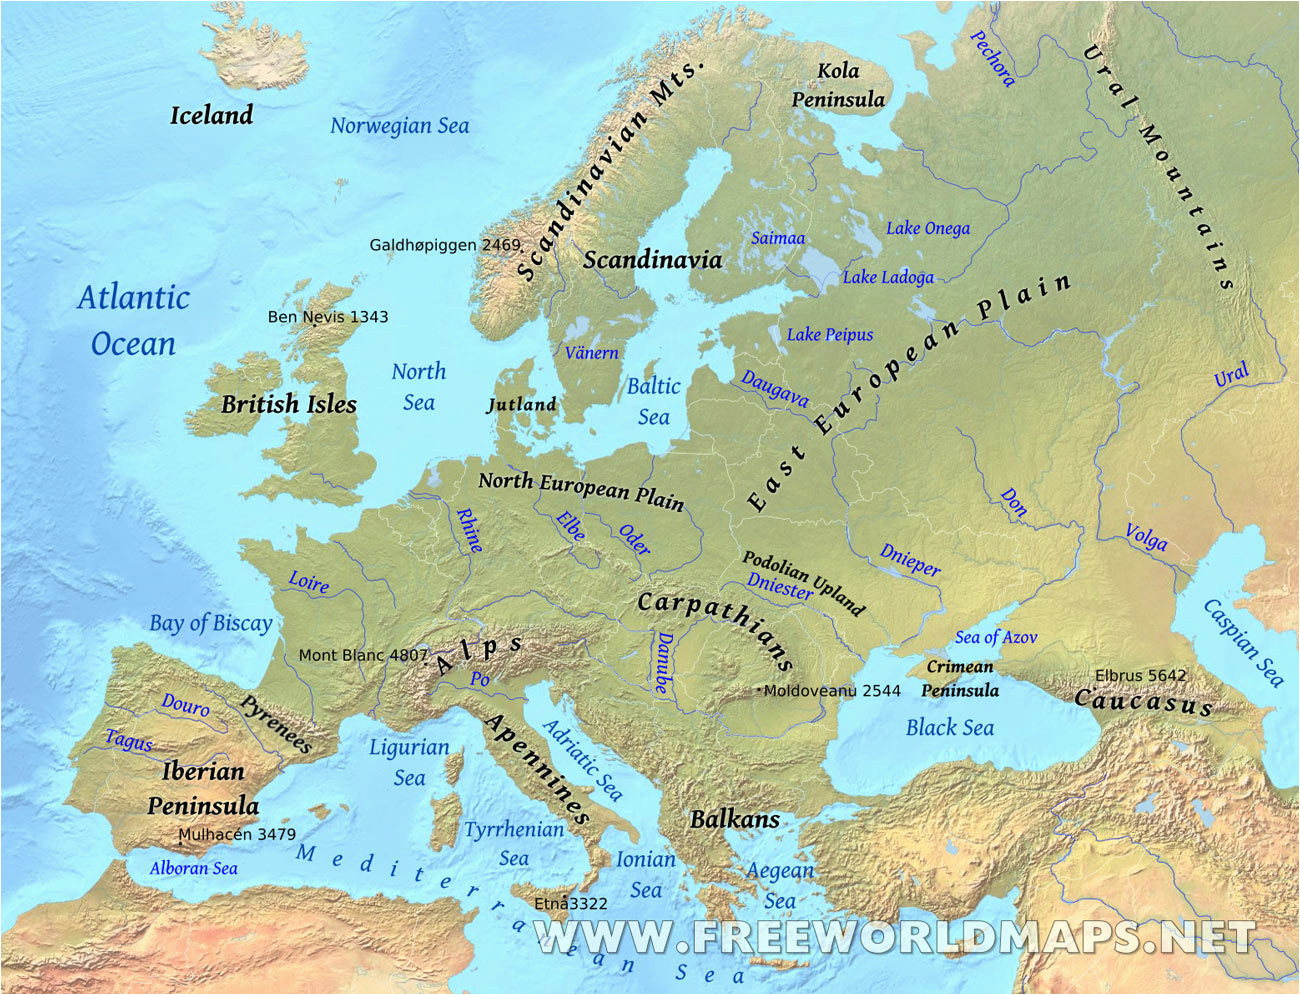 Western Europe Physical Features Map 36 Intelligible Blank Map Of Europe and Mediterranean